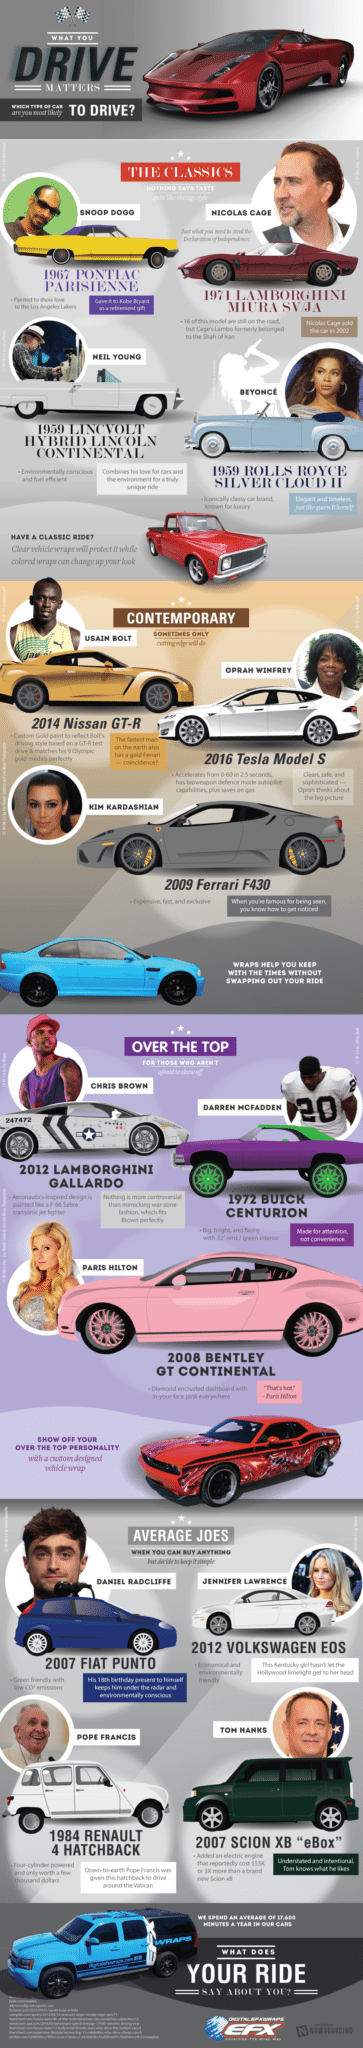 Does Your Car Reveal Your Personality? [Infographic] 1